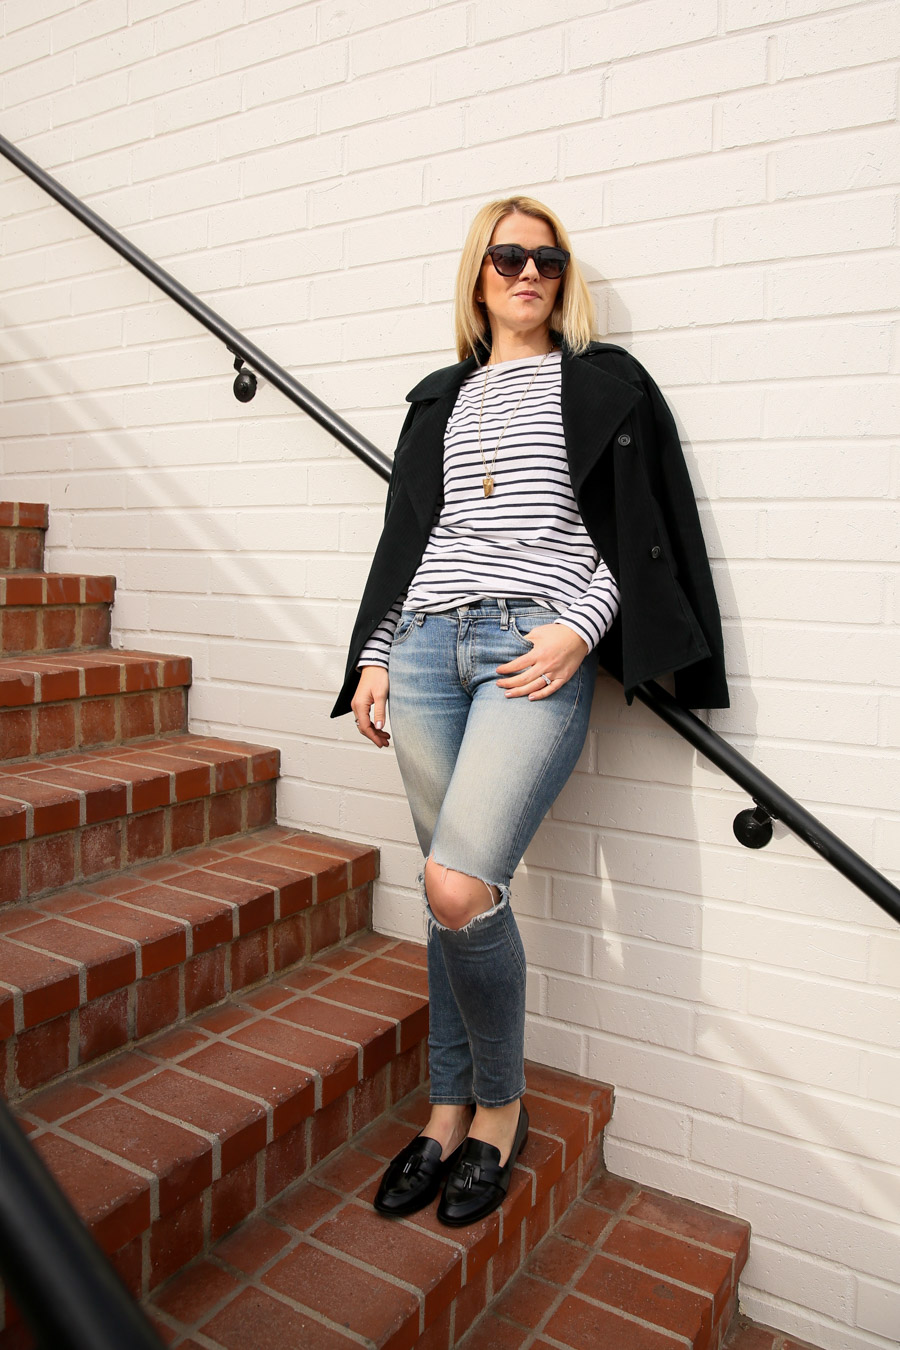 Women's Striped Blazer Outfit with Jeans - Why You Should Buy Some Clothes too Big